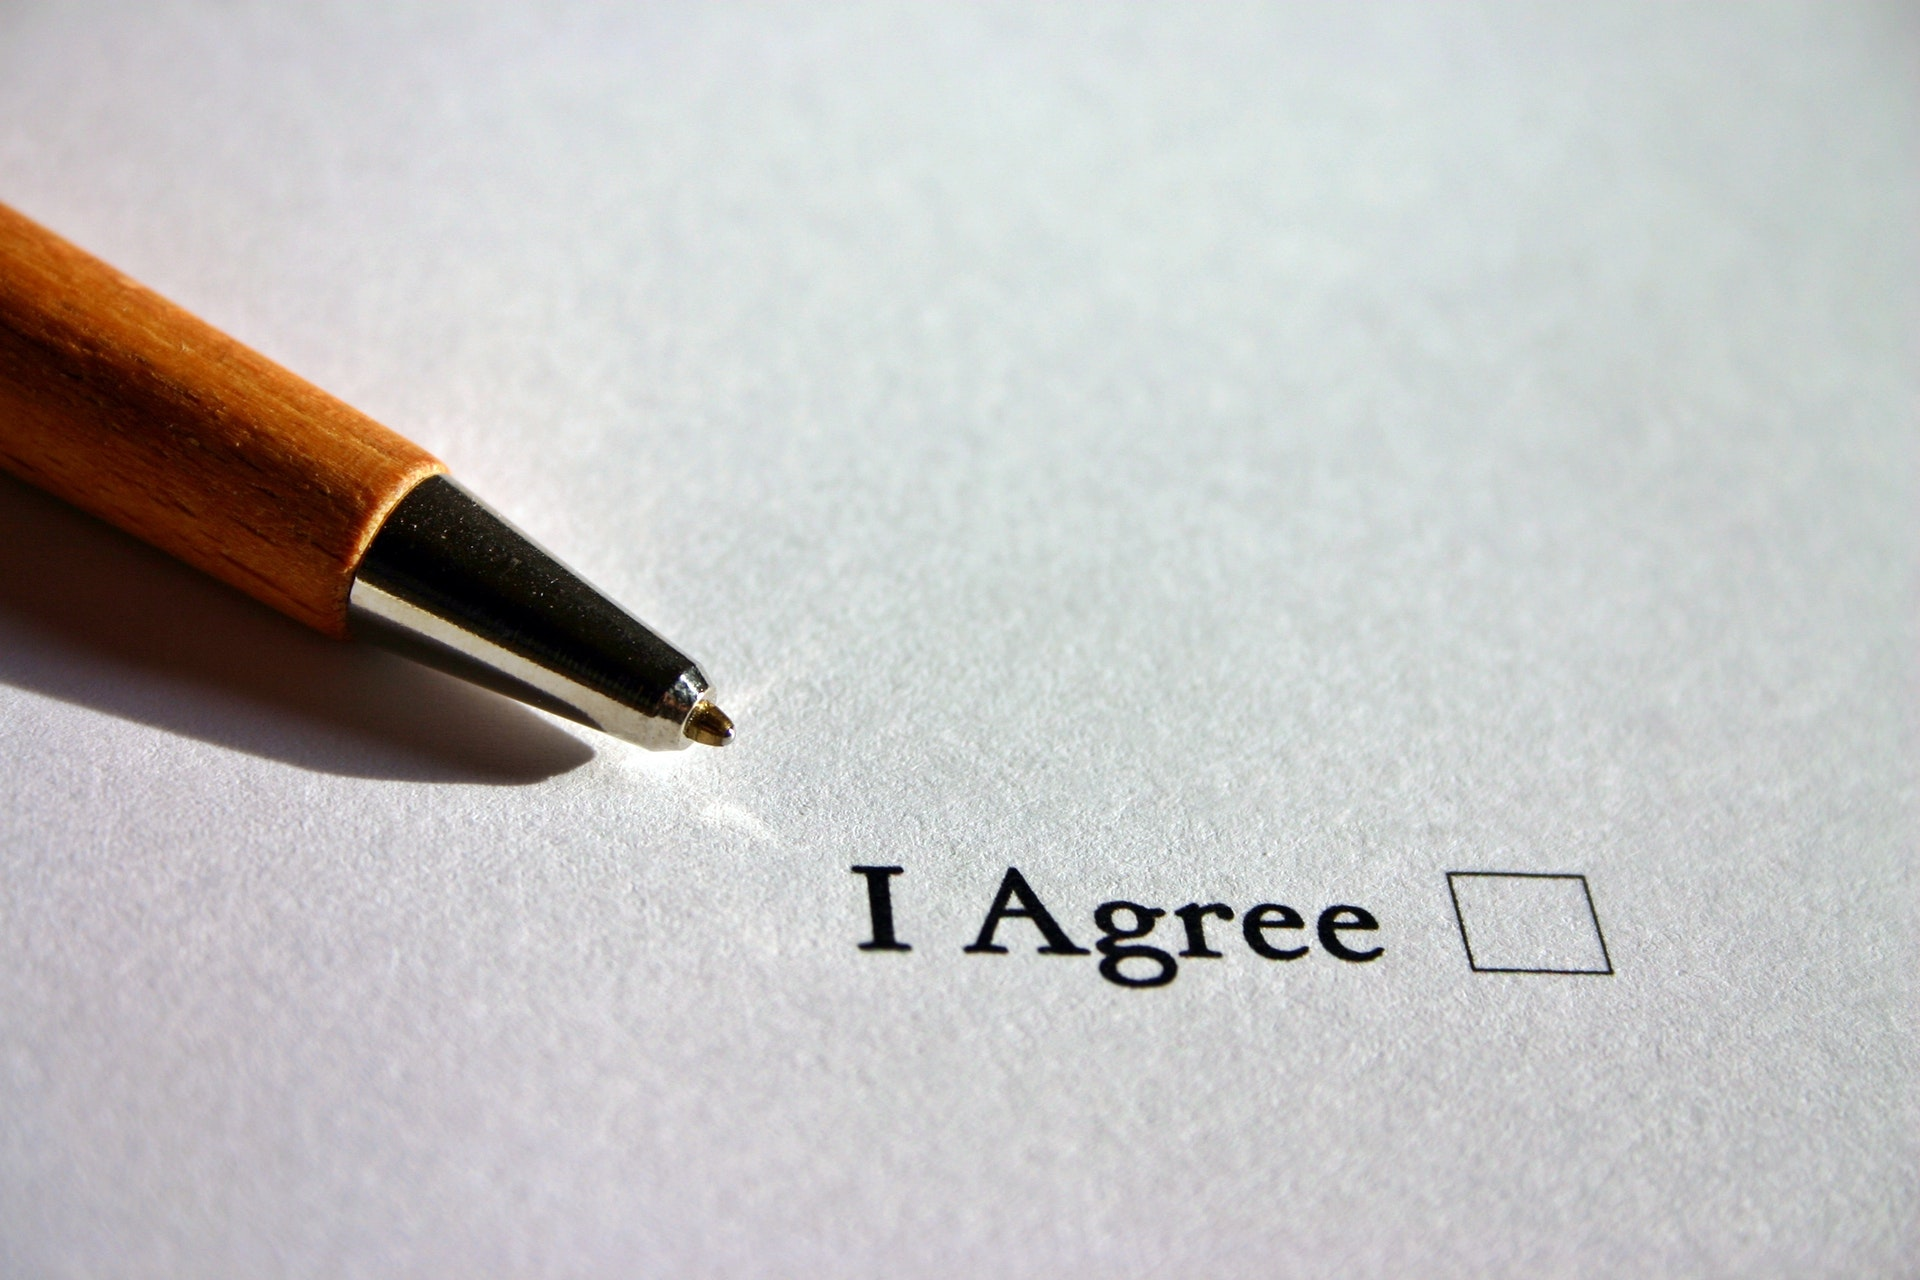 terms and conditions document signing agree tick box with pen